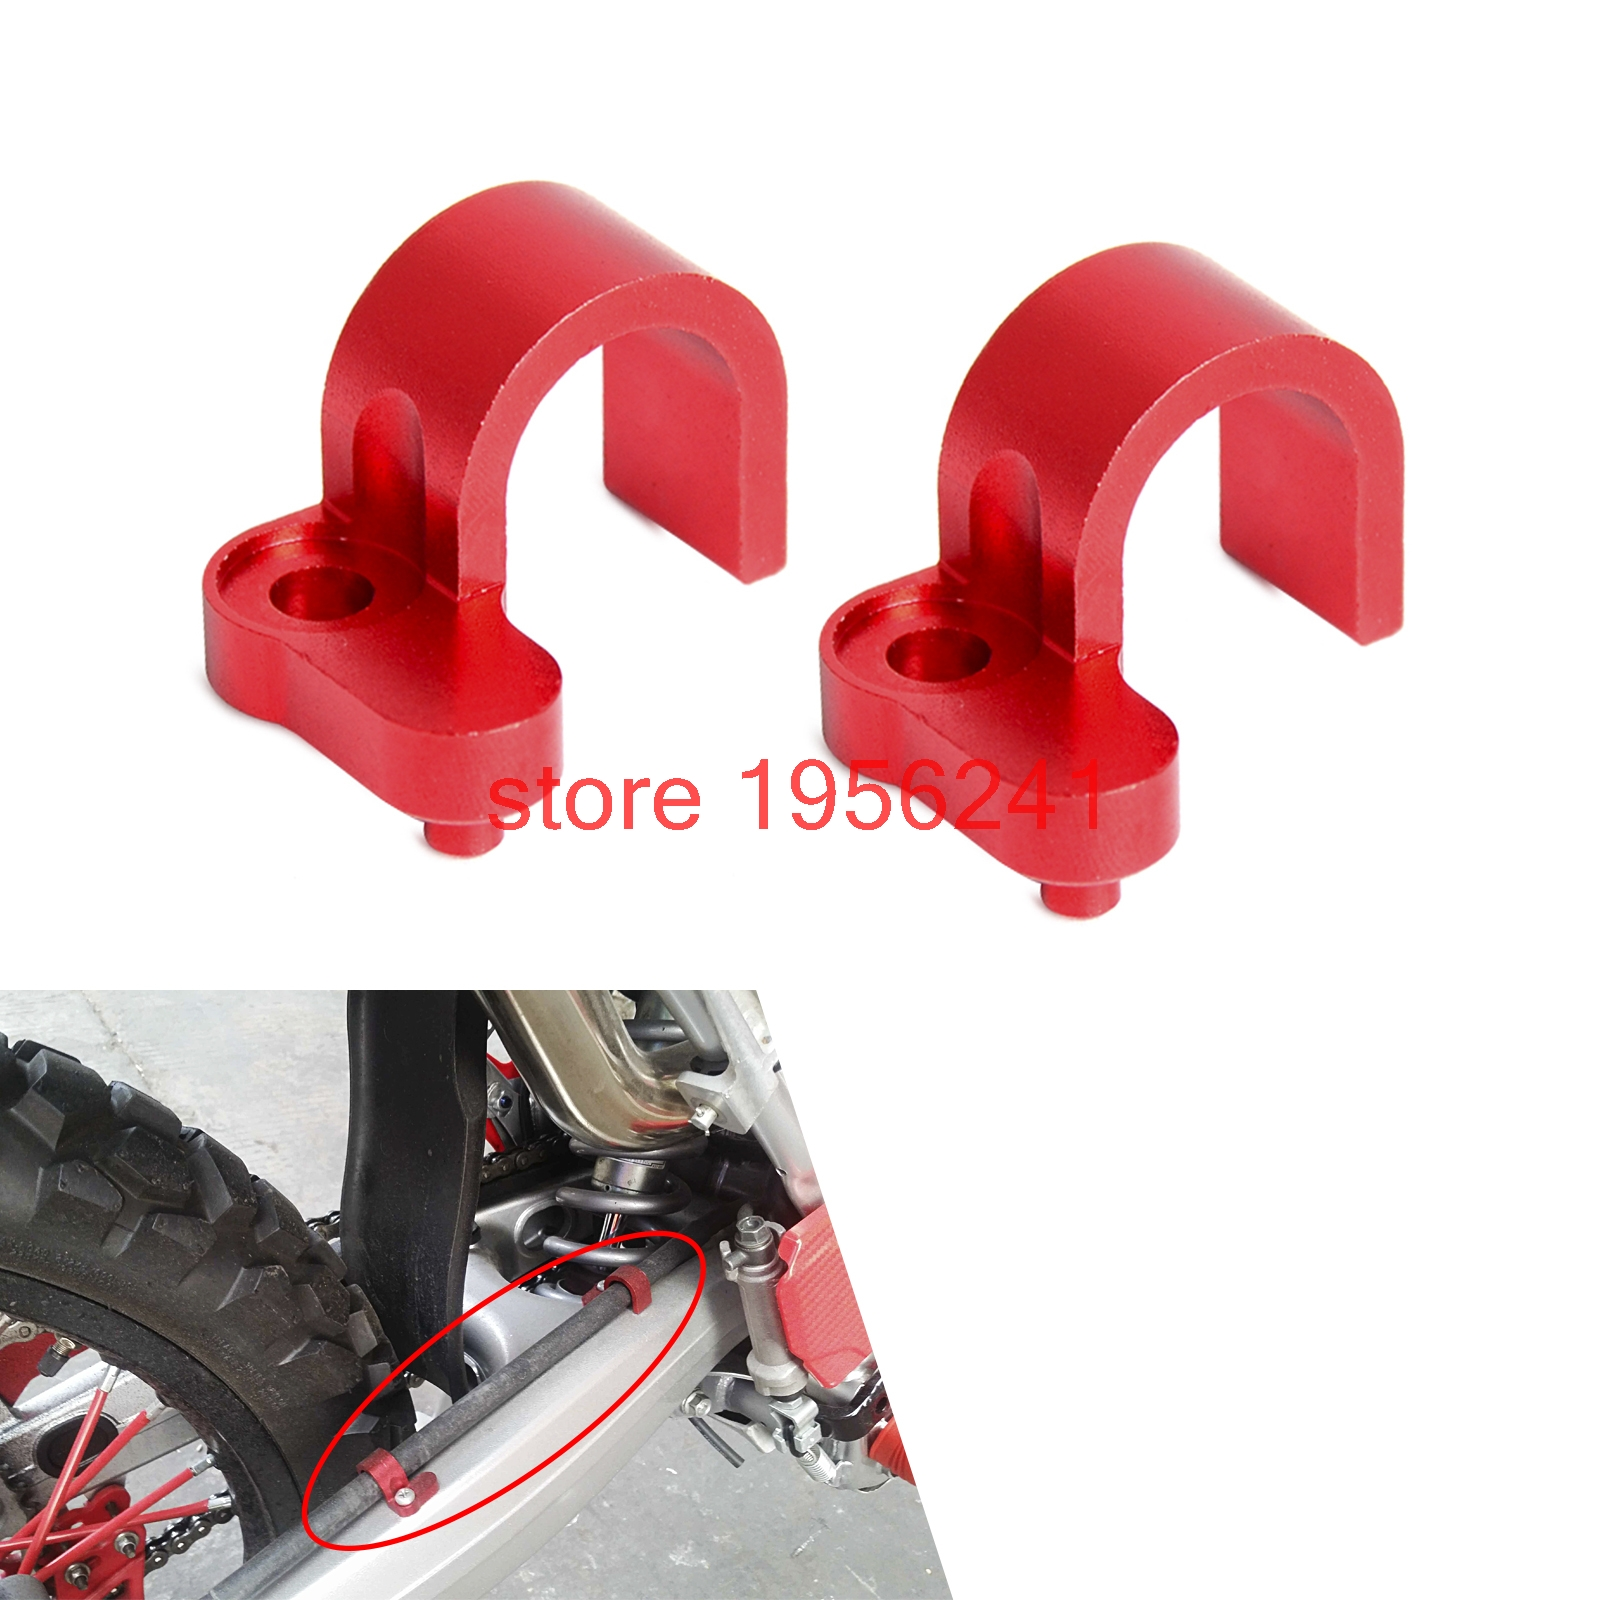 CNC Rear Brake Line Hose Clamp Holder For Honda CRF250L CRF250M 2012 - 2015 2013 2014 CRF250 L/M neo chrome rear lower control arm lca for honda civic 2001 2005 e2c